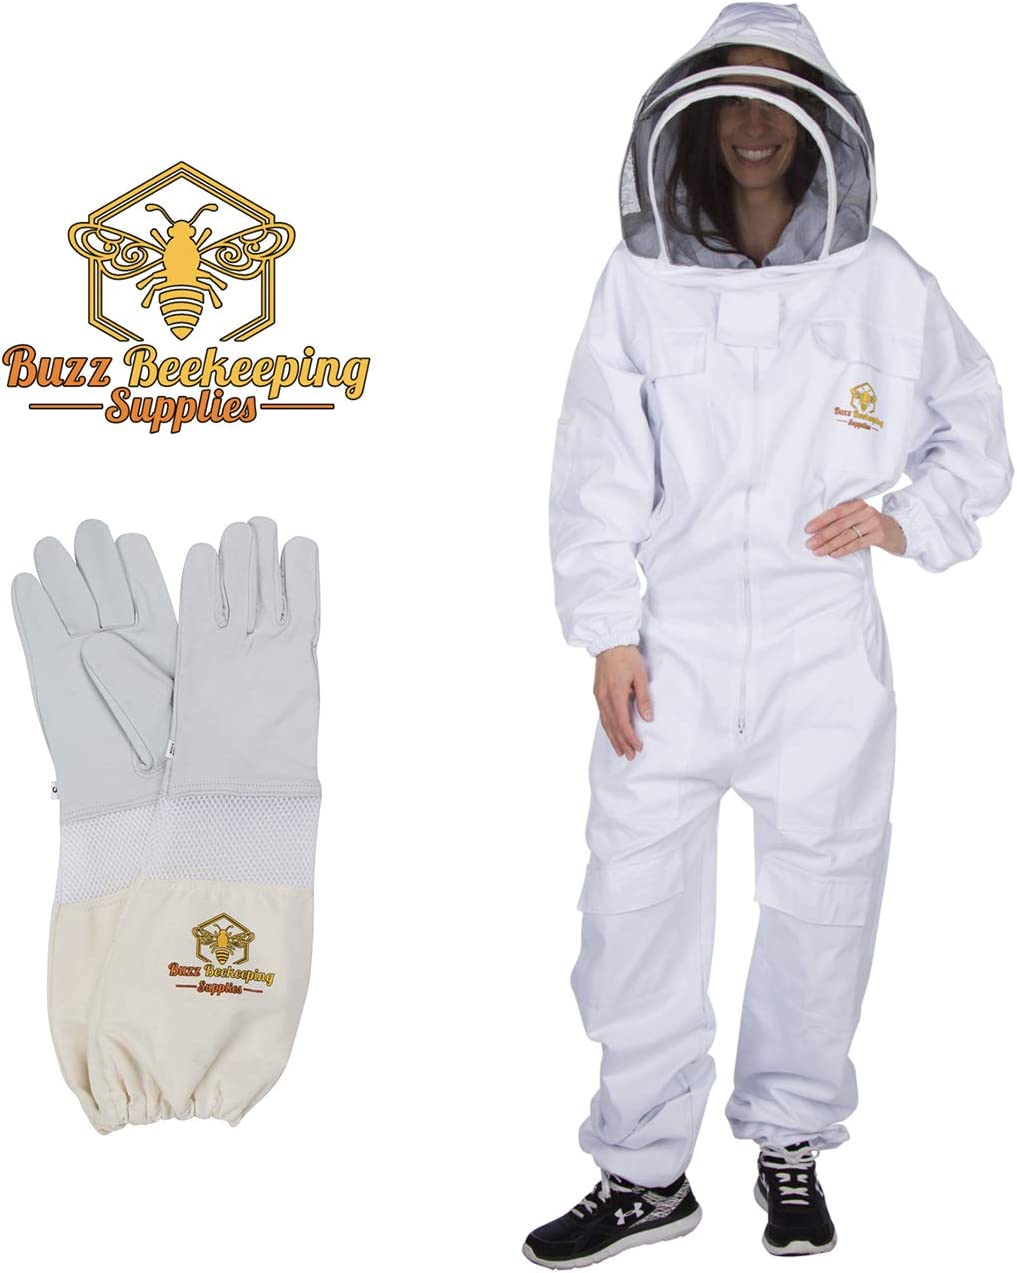 Professional Beekeeping Suit with Goatskin Gloves (1 Pair) and Bee Stickers